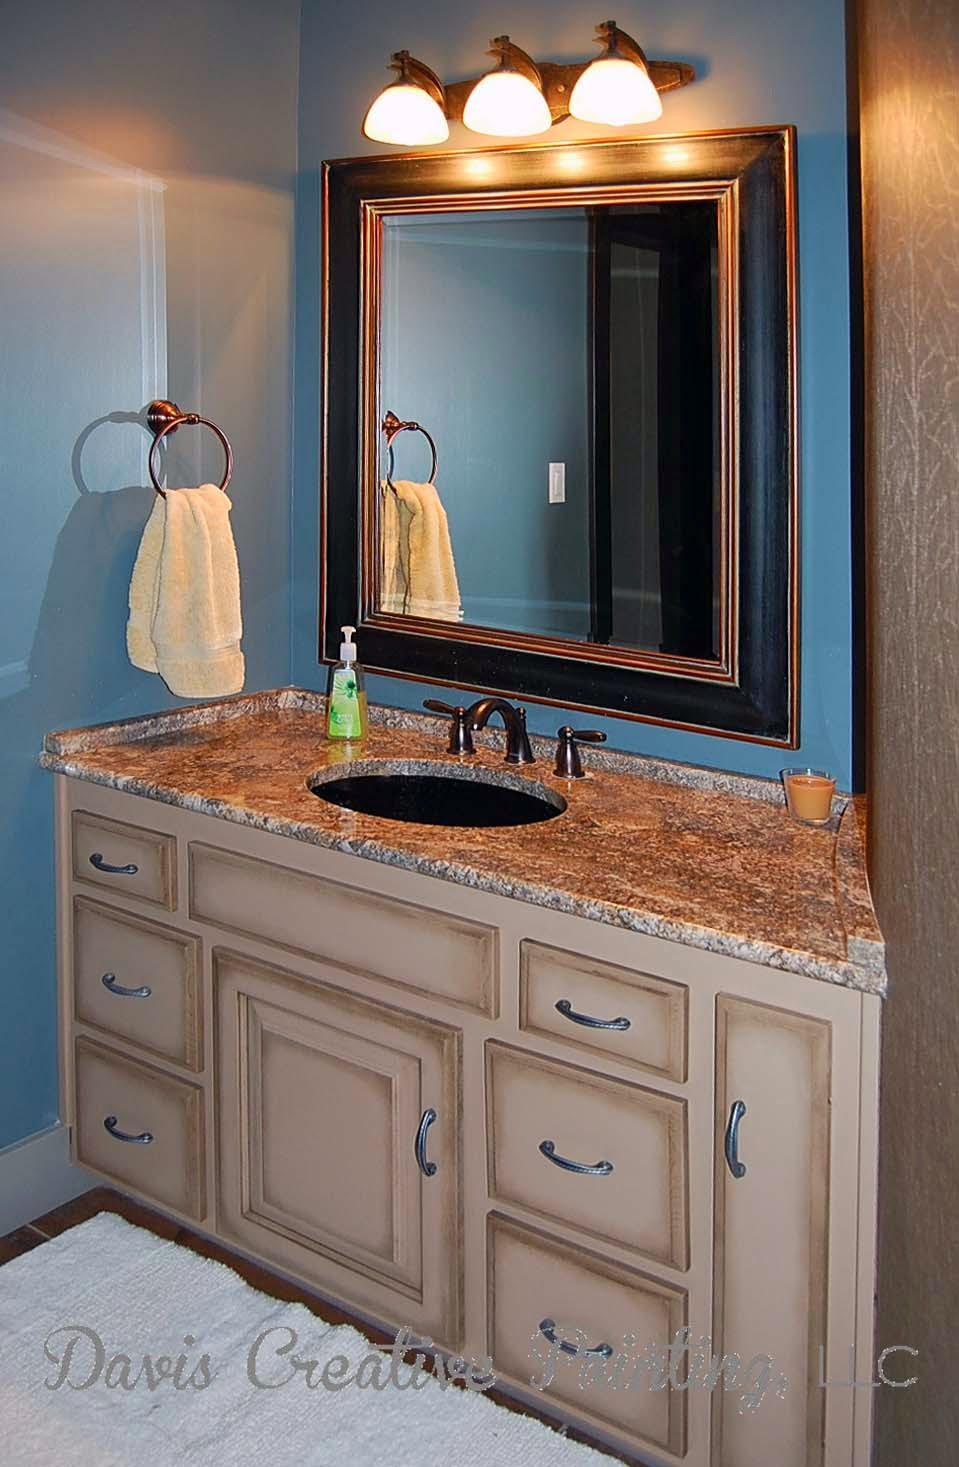 Davis Creative Painting: Painted Oak Bathroom Vanity